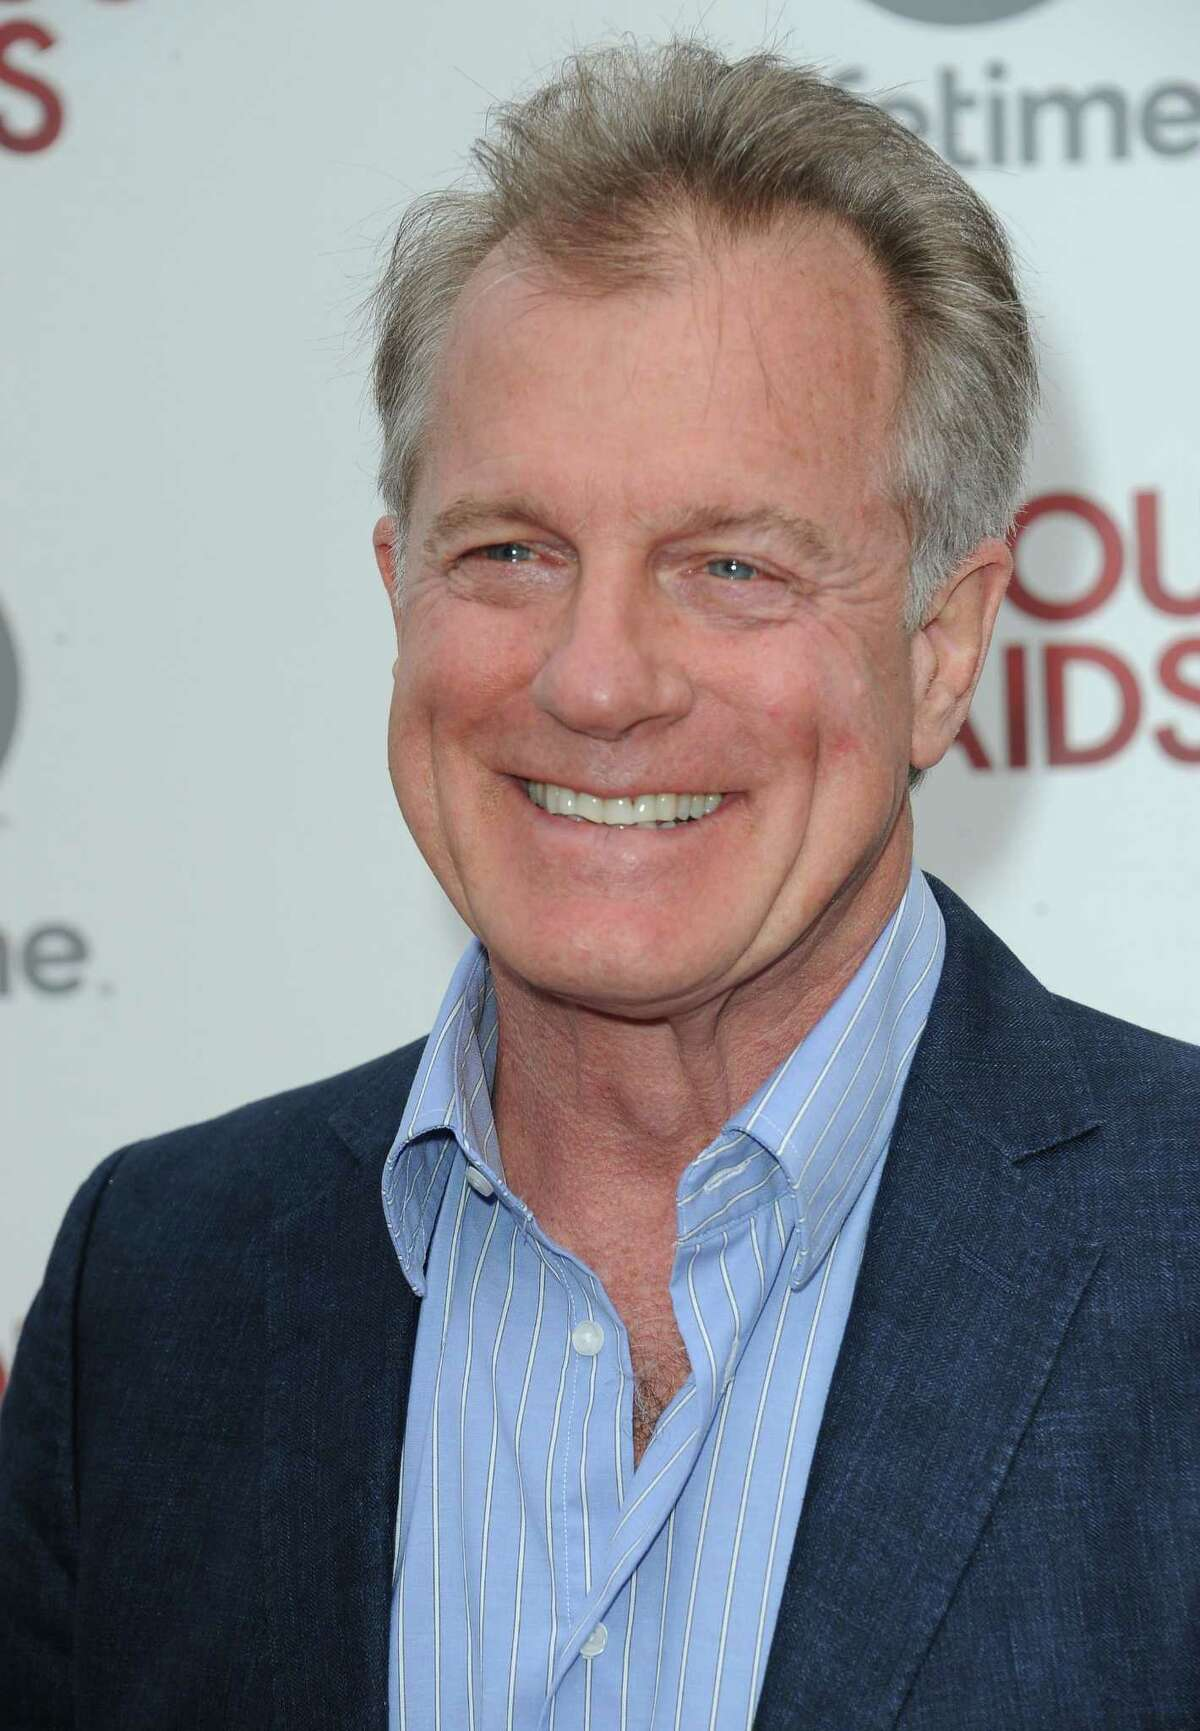 FILE - In this June 17, 2013 file photo, Stephen Collins attends the premiere party for